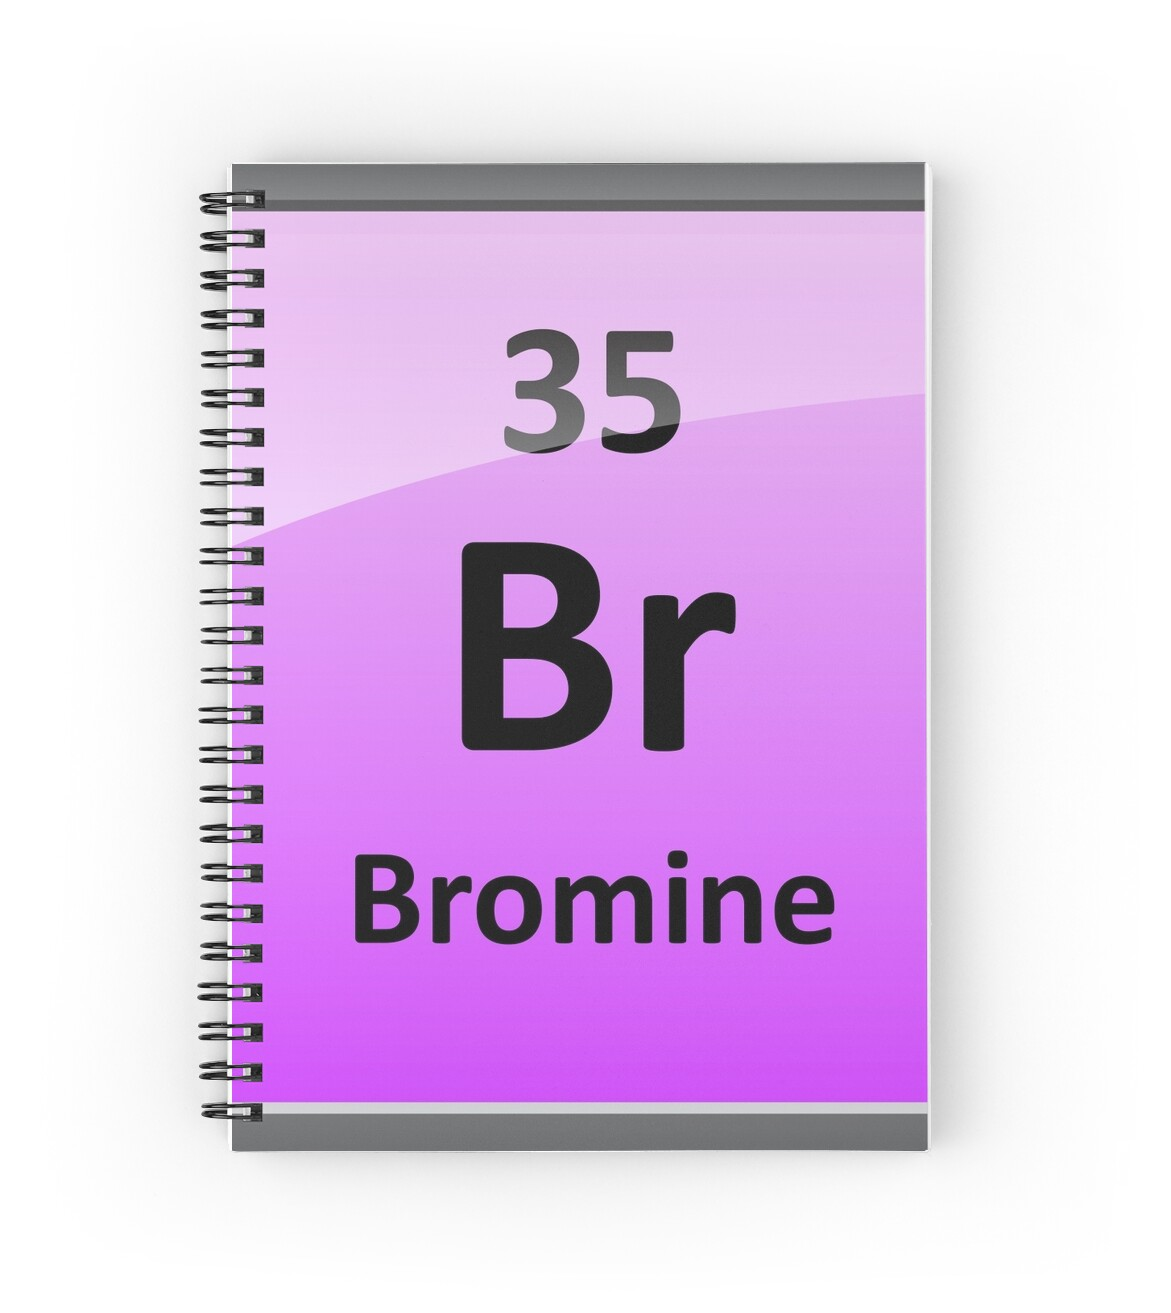 Bromine element symbol periodic table spiral notebooks by bromine element symbol periodic table by sciencenotes biocorpaavc